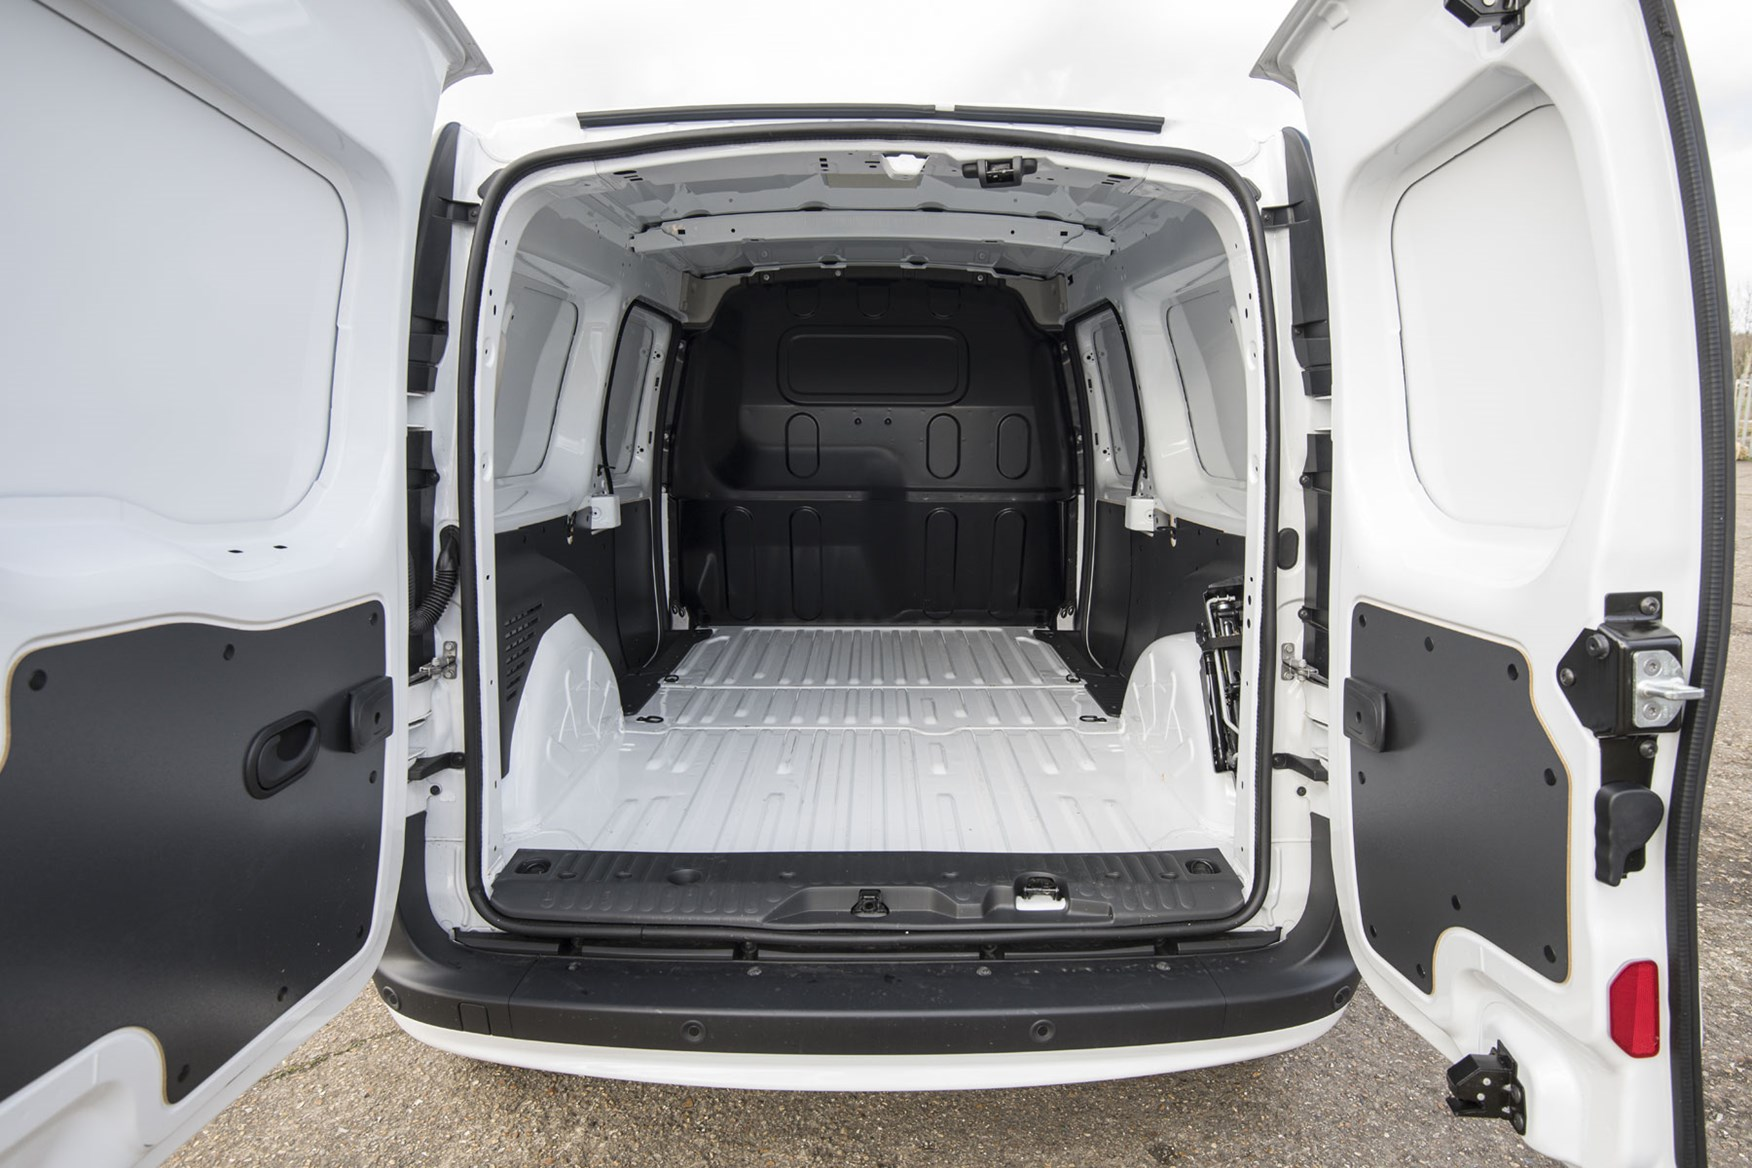 Renault Kangoo van review - load area, 2020